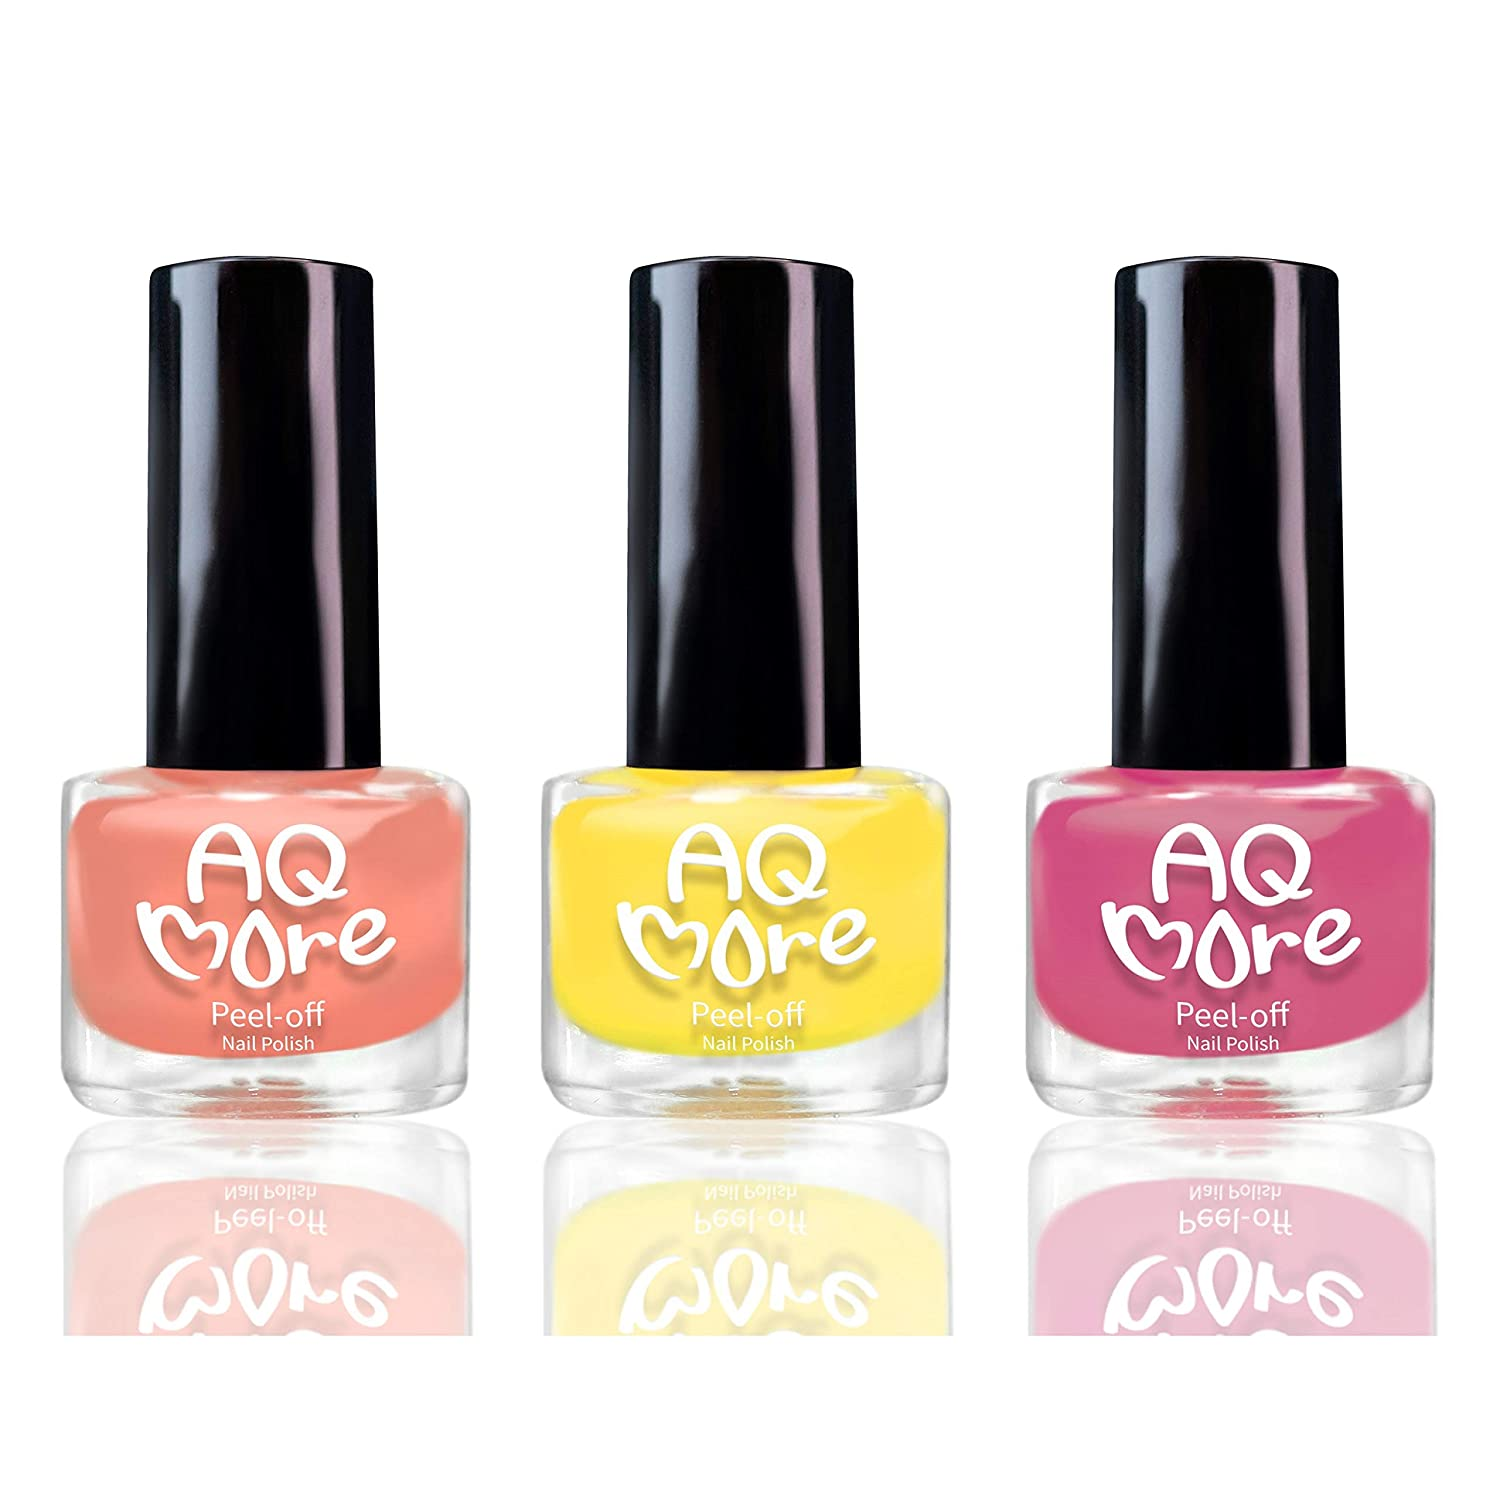 AQMORE Non Toxic Water Based Peel Off Nail Polish – Lasts for Days, GEL Like Shine, Dries in Minutes, Fragrance & Paraben Free, Kid Safe, Great Gift Idea - 3 Colors (0.20 fl oz/Bottle)(Ms Grapefruit)